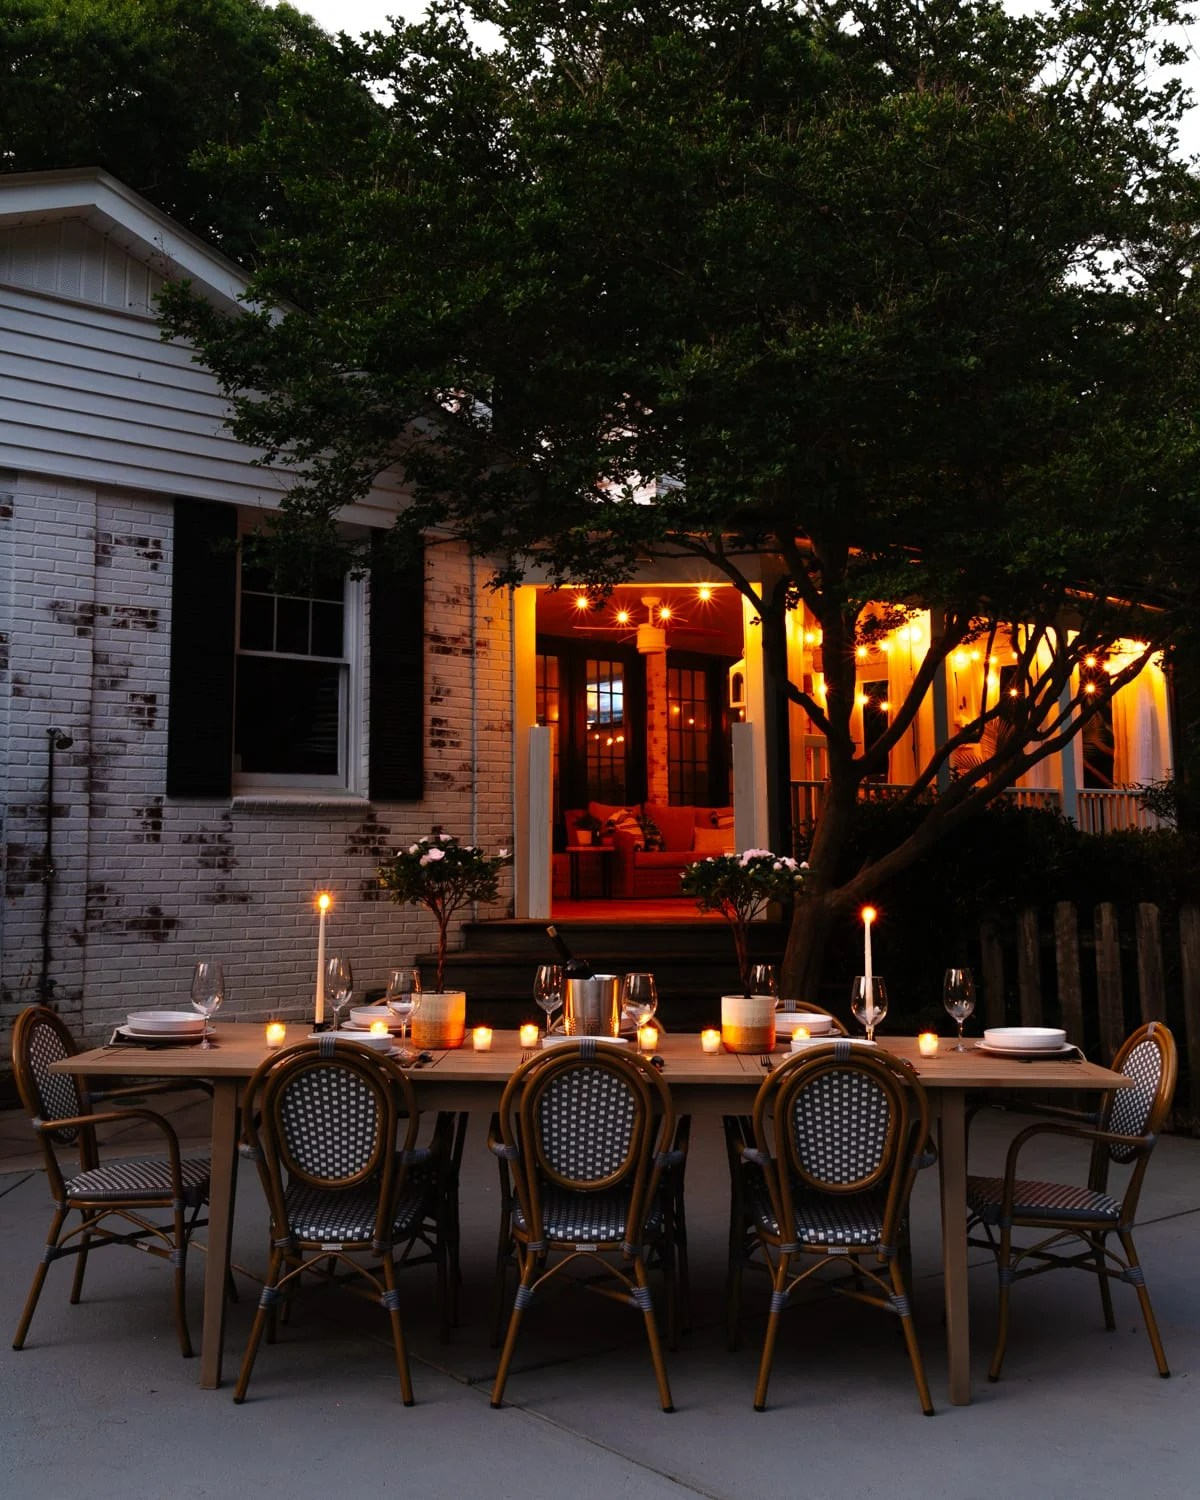 night time backyard patio and back porch with string lights and candlelight